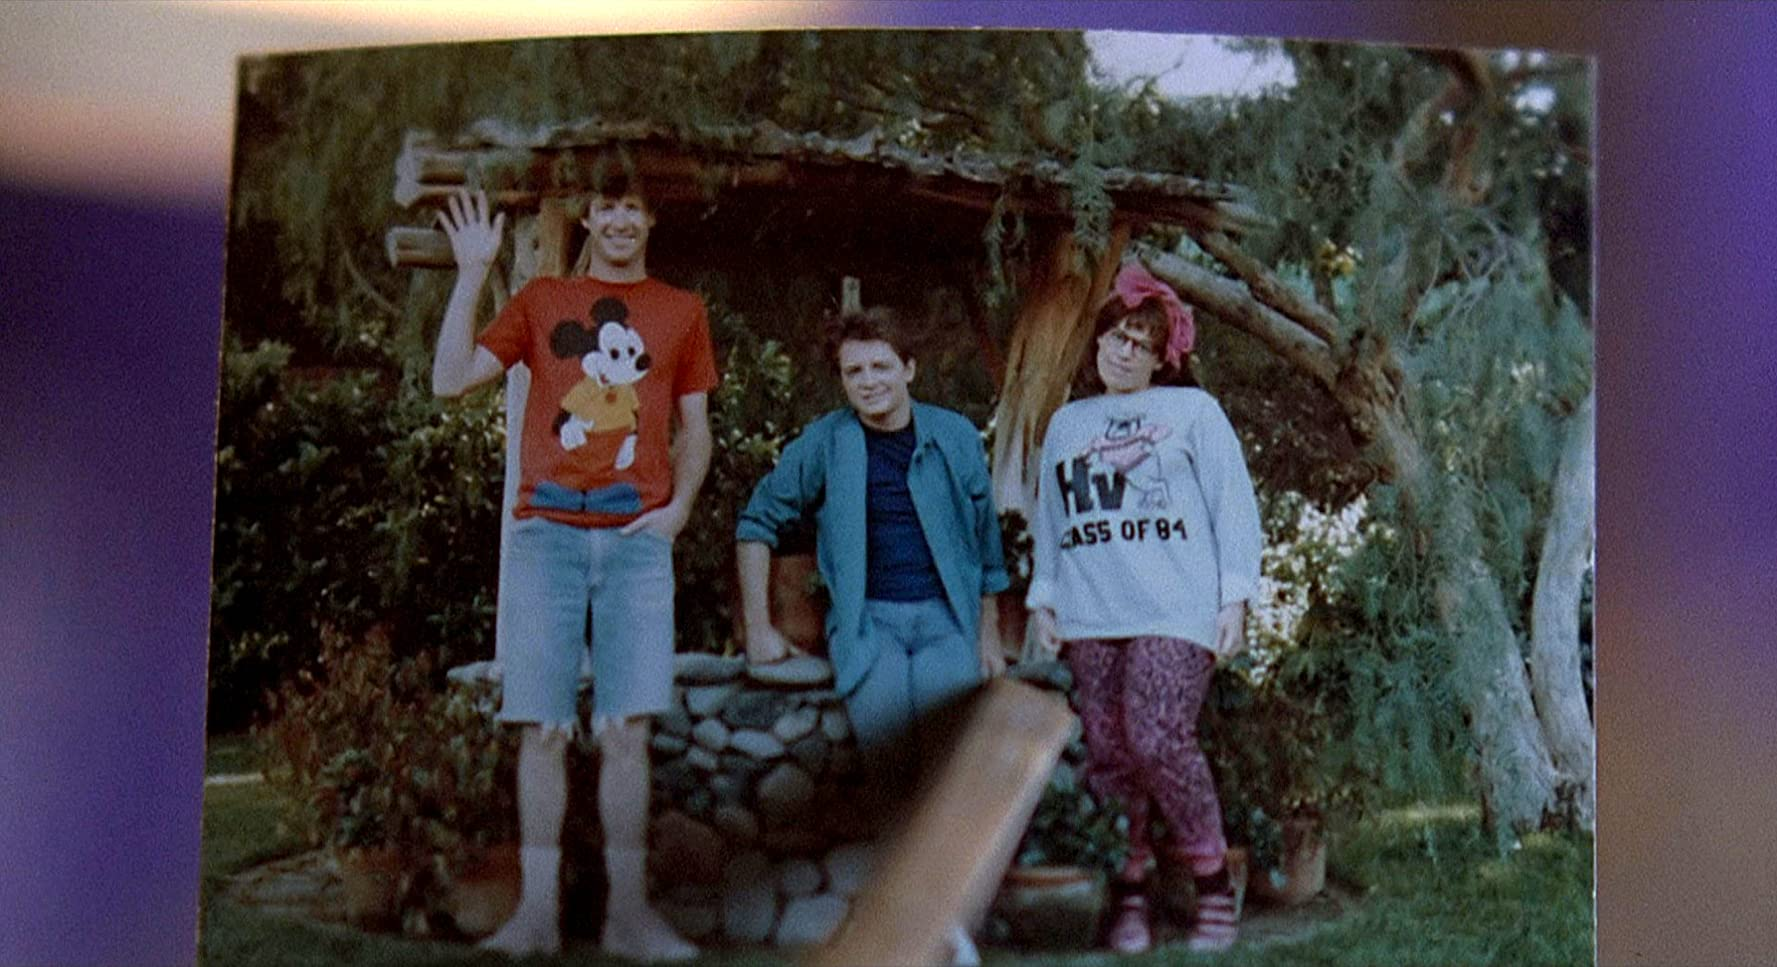 Michael J. Fox, Marc McClure, and Wendie Jo Sperber in Back to the Future (1985)